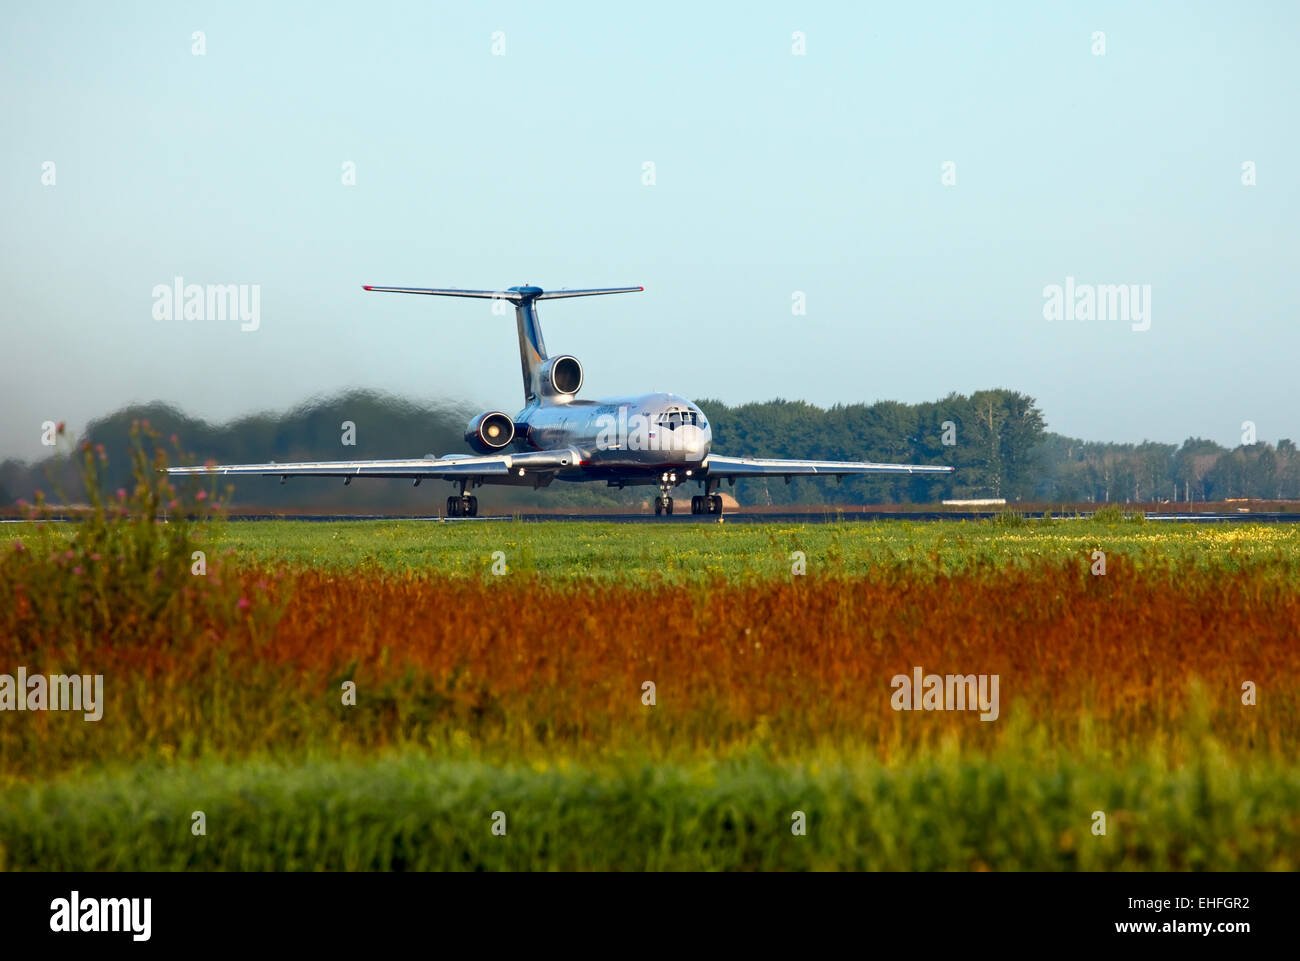 Before takeoff. - Stock Image